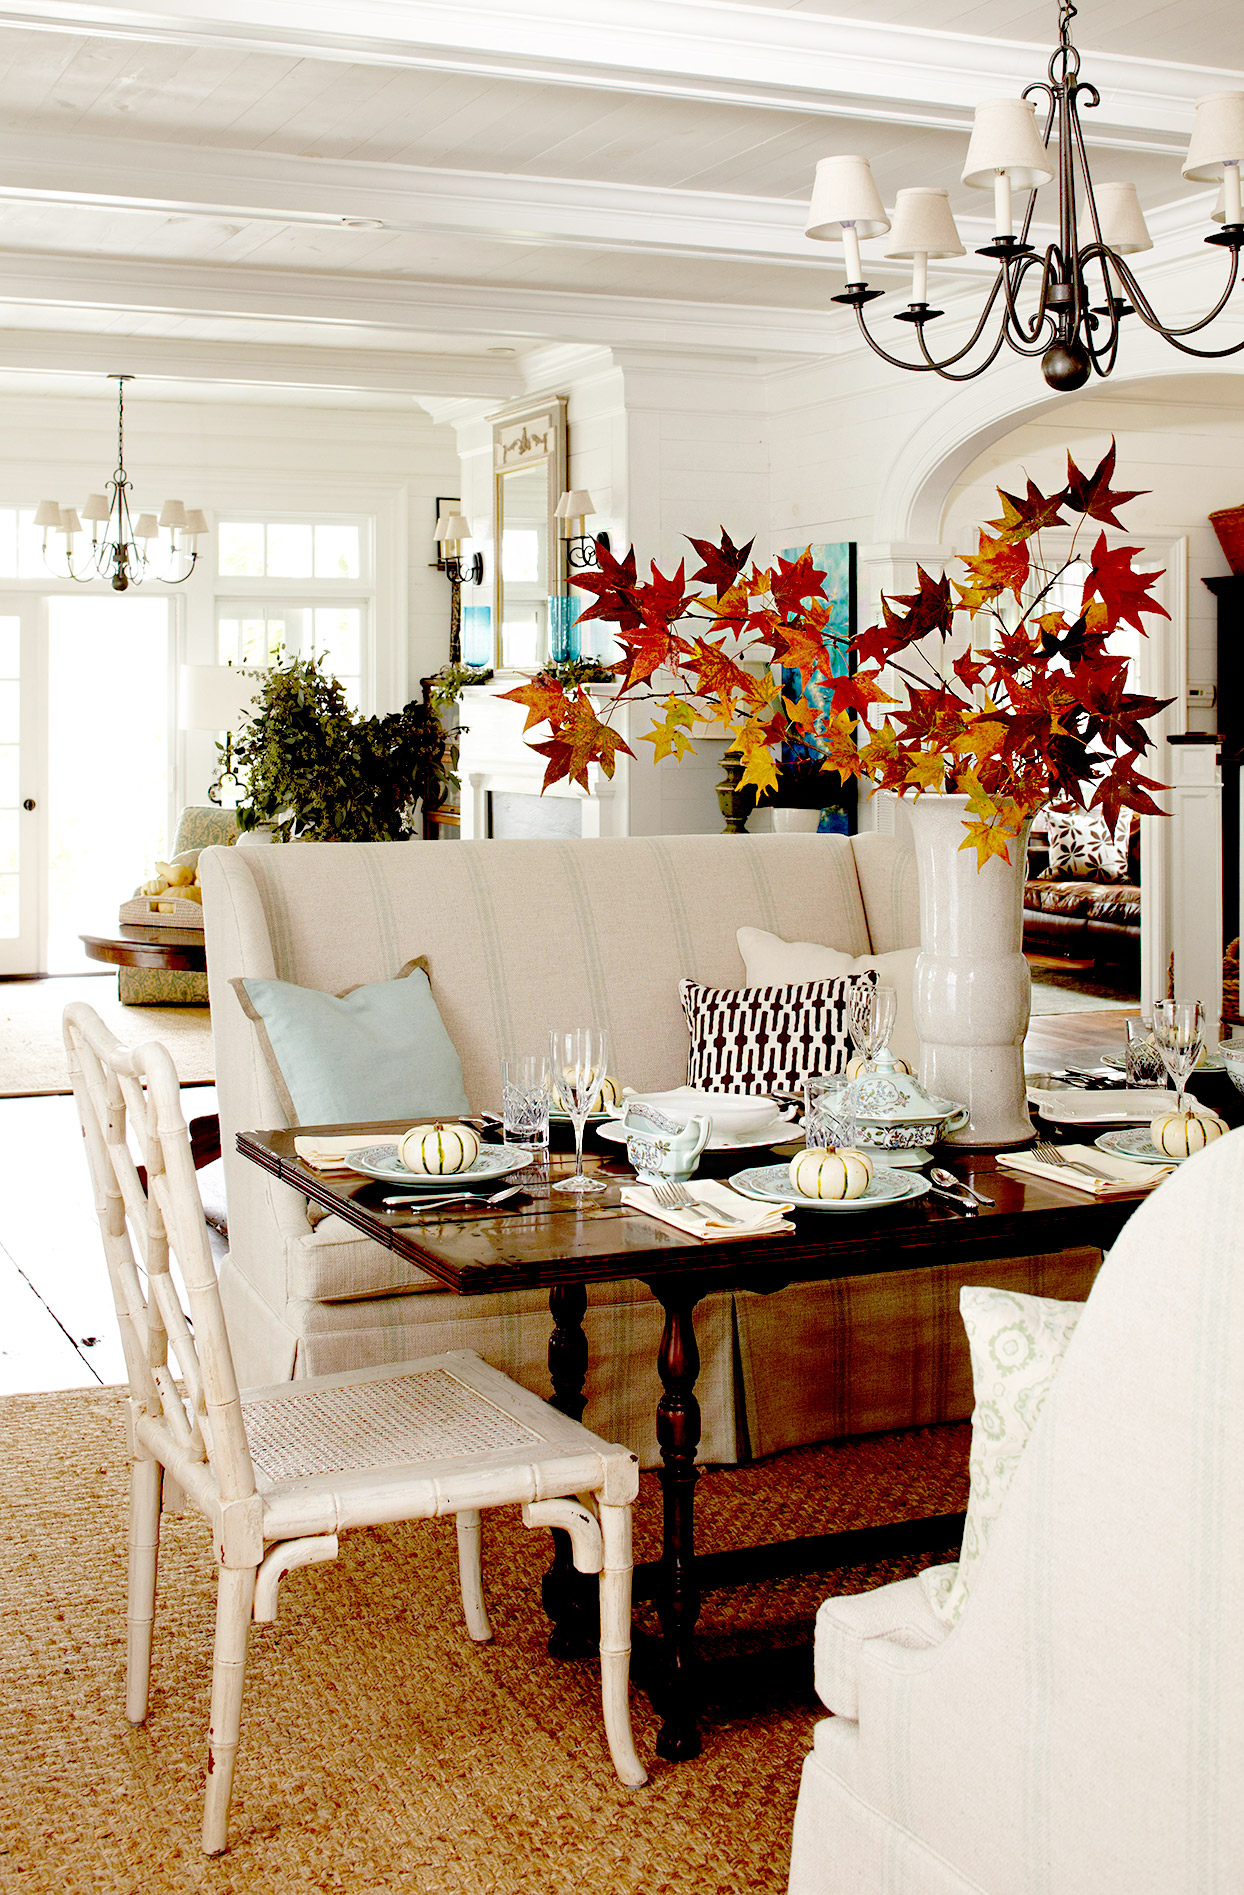 Dining area with fall leaf centerpiece and pumpkins